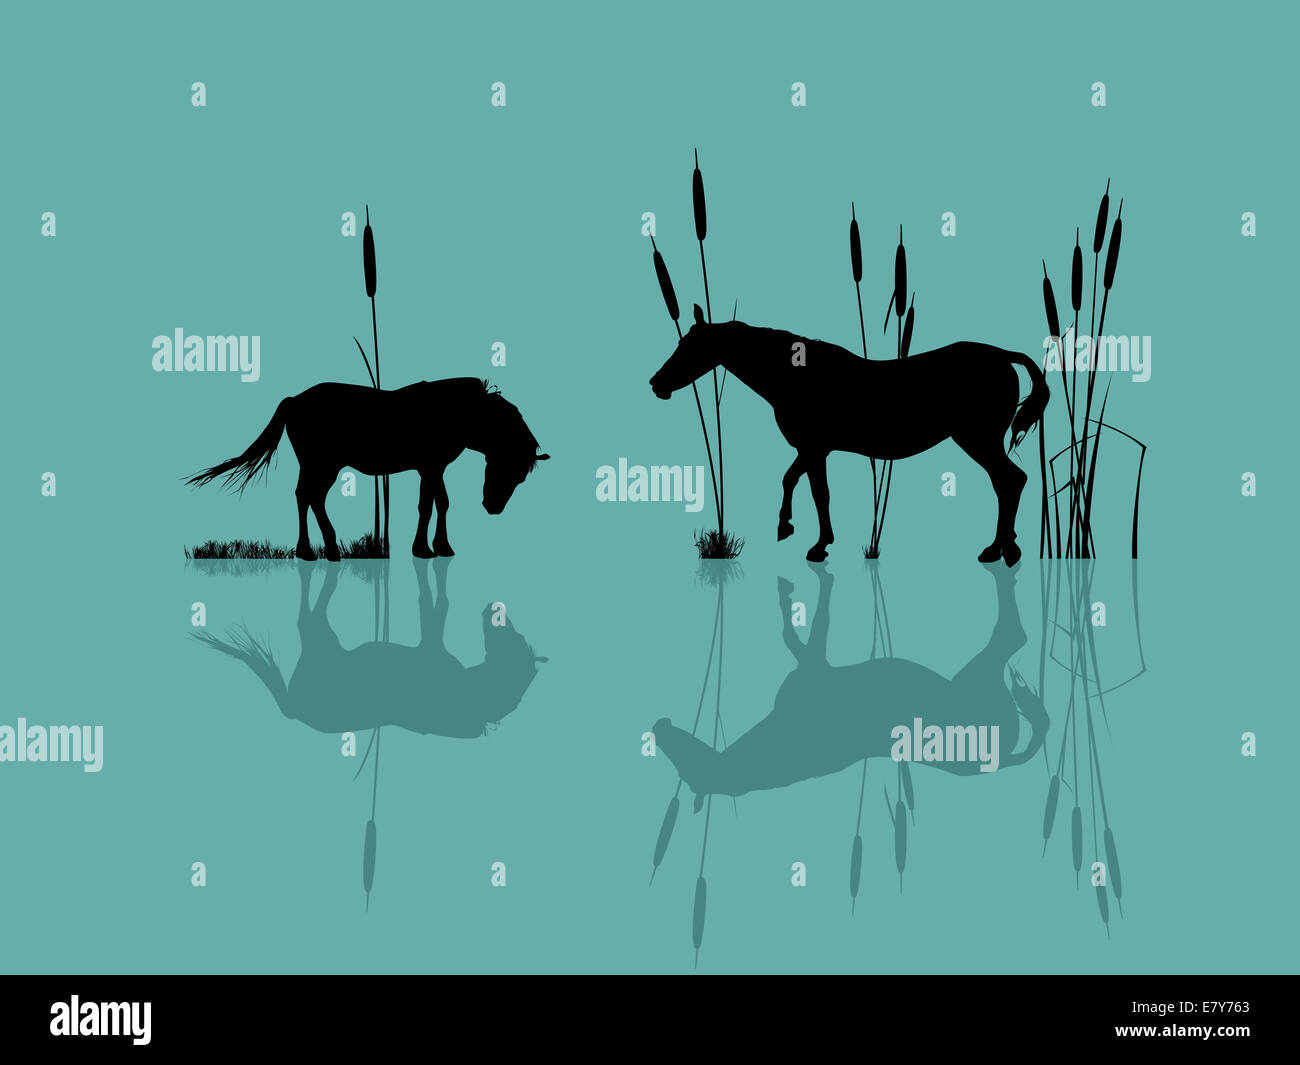 Background romantic illustration with horses at the water - Stock Image